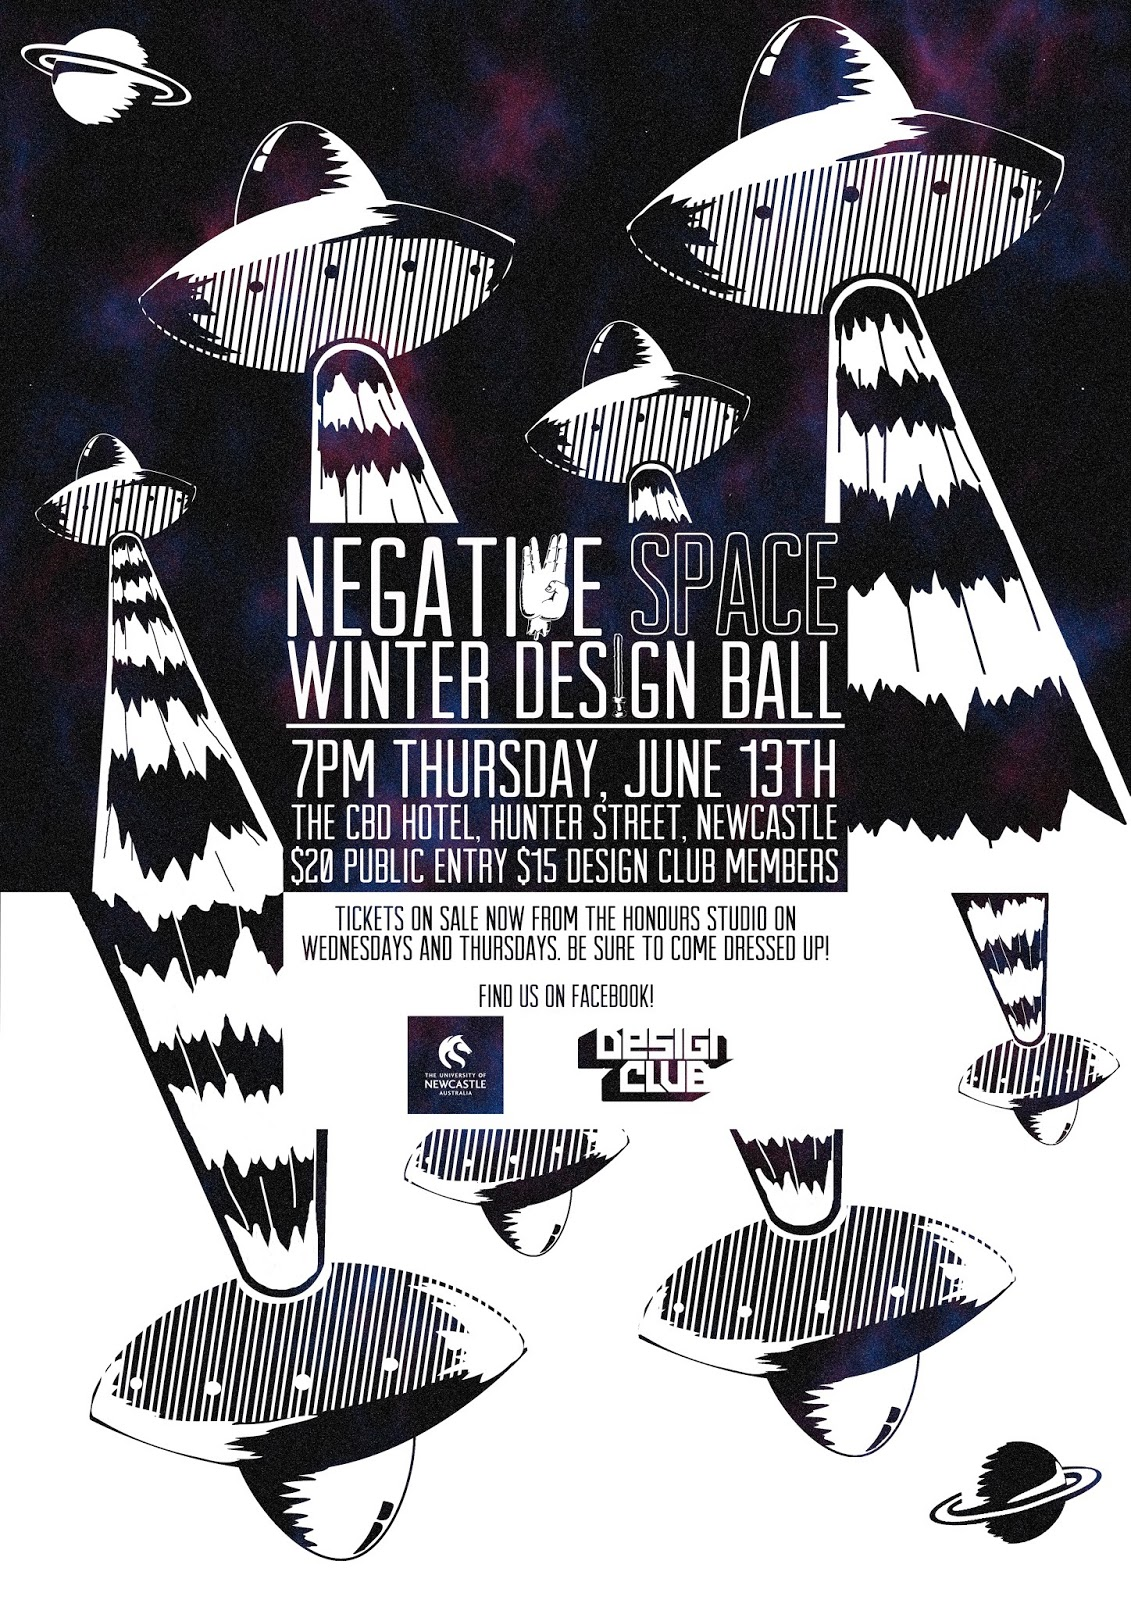 Poster design newcastle - Brief Create An A3 Size Poster For The Winter Design Ball The Theme Was Negative Space And Had To Convey That The Ball Was Space Themed Without Having